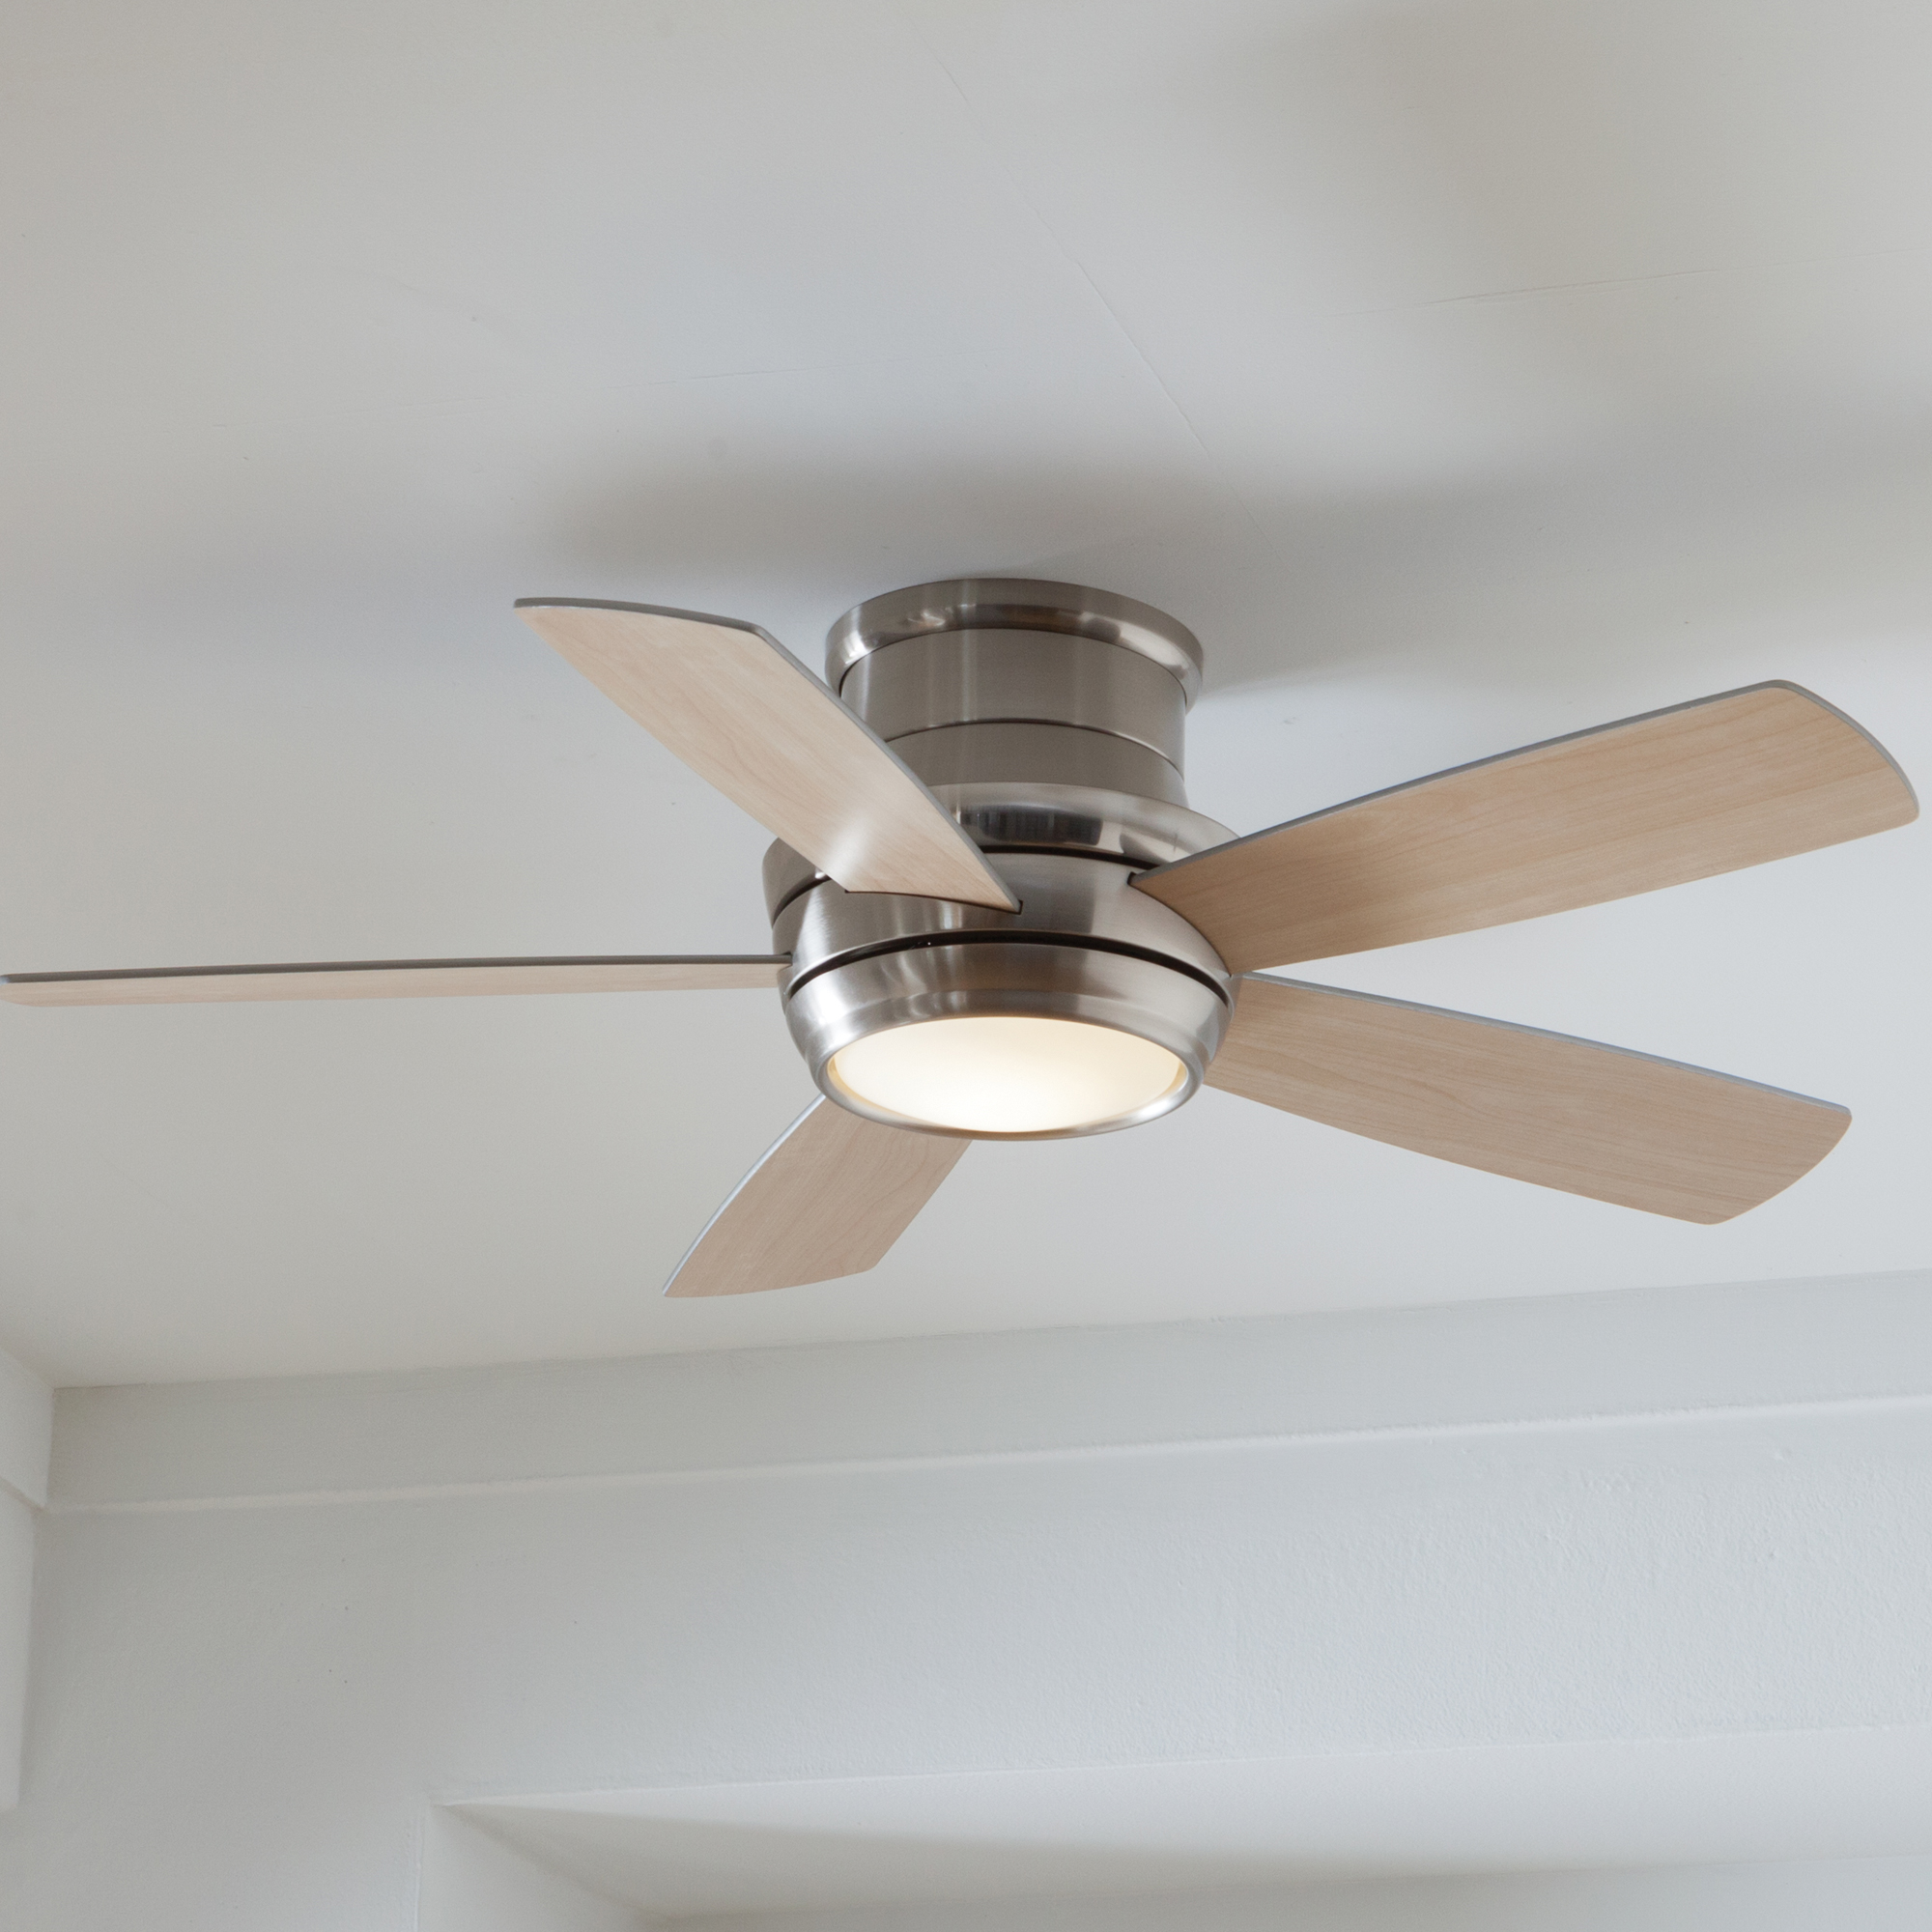 Modern Lighting Allmodern Wiring Light Fixtures In Series Google Search Ceiling Fans